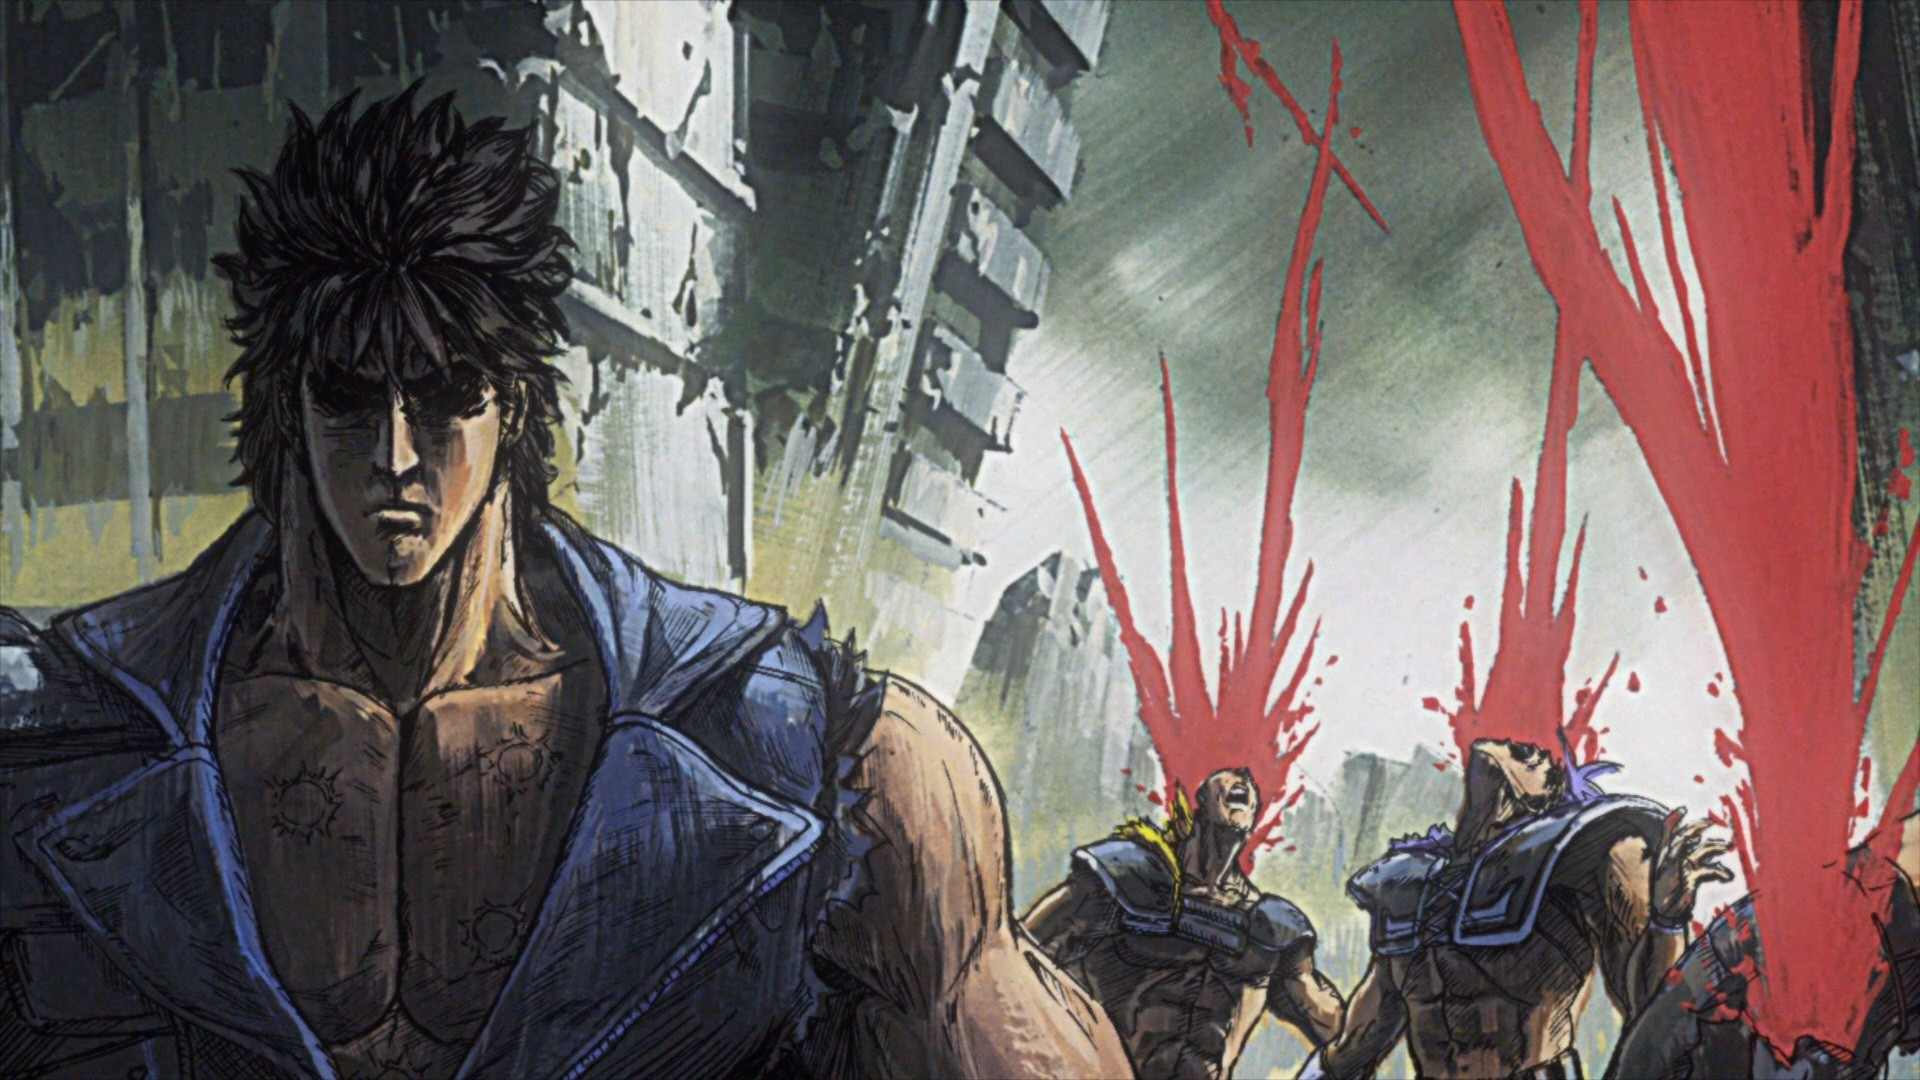 View Fist Of The North Star 2 Hokuto No Ken Dead 1080766